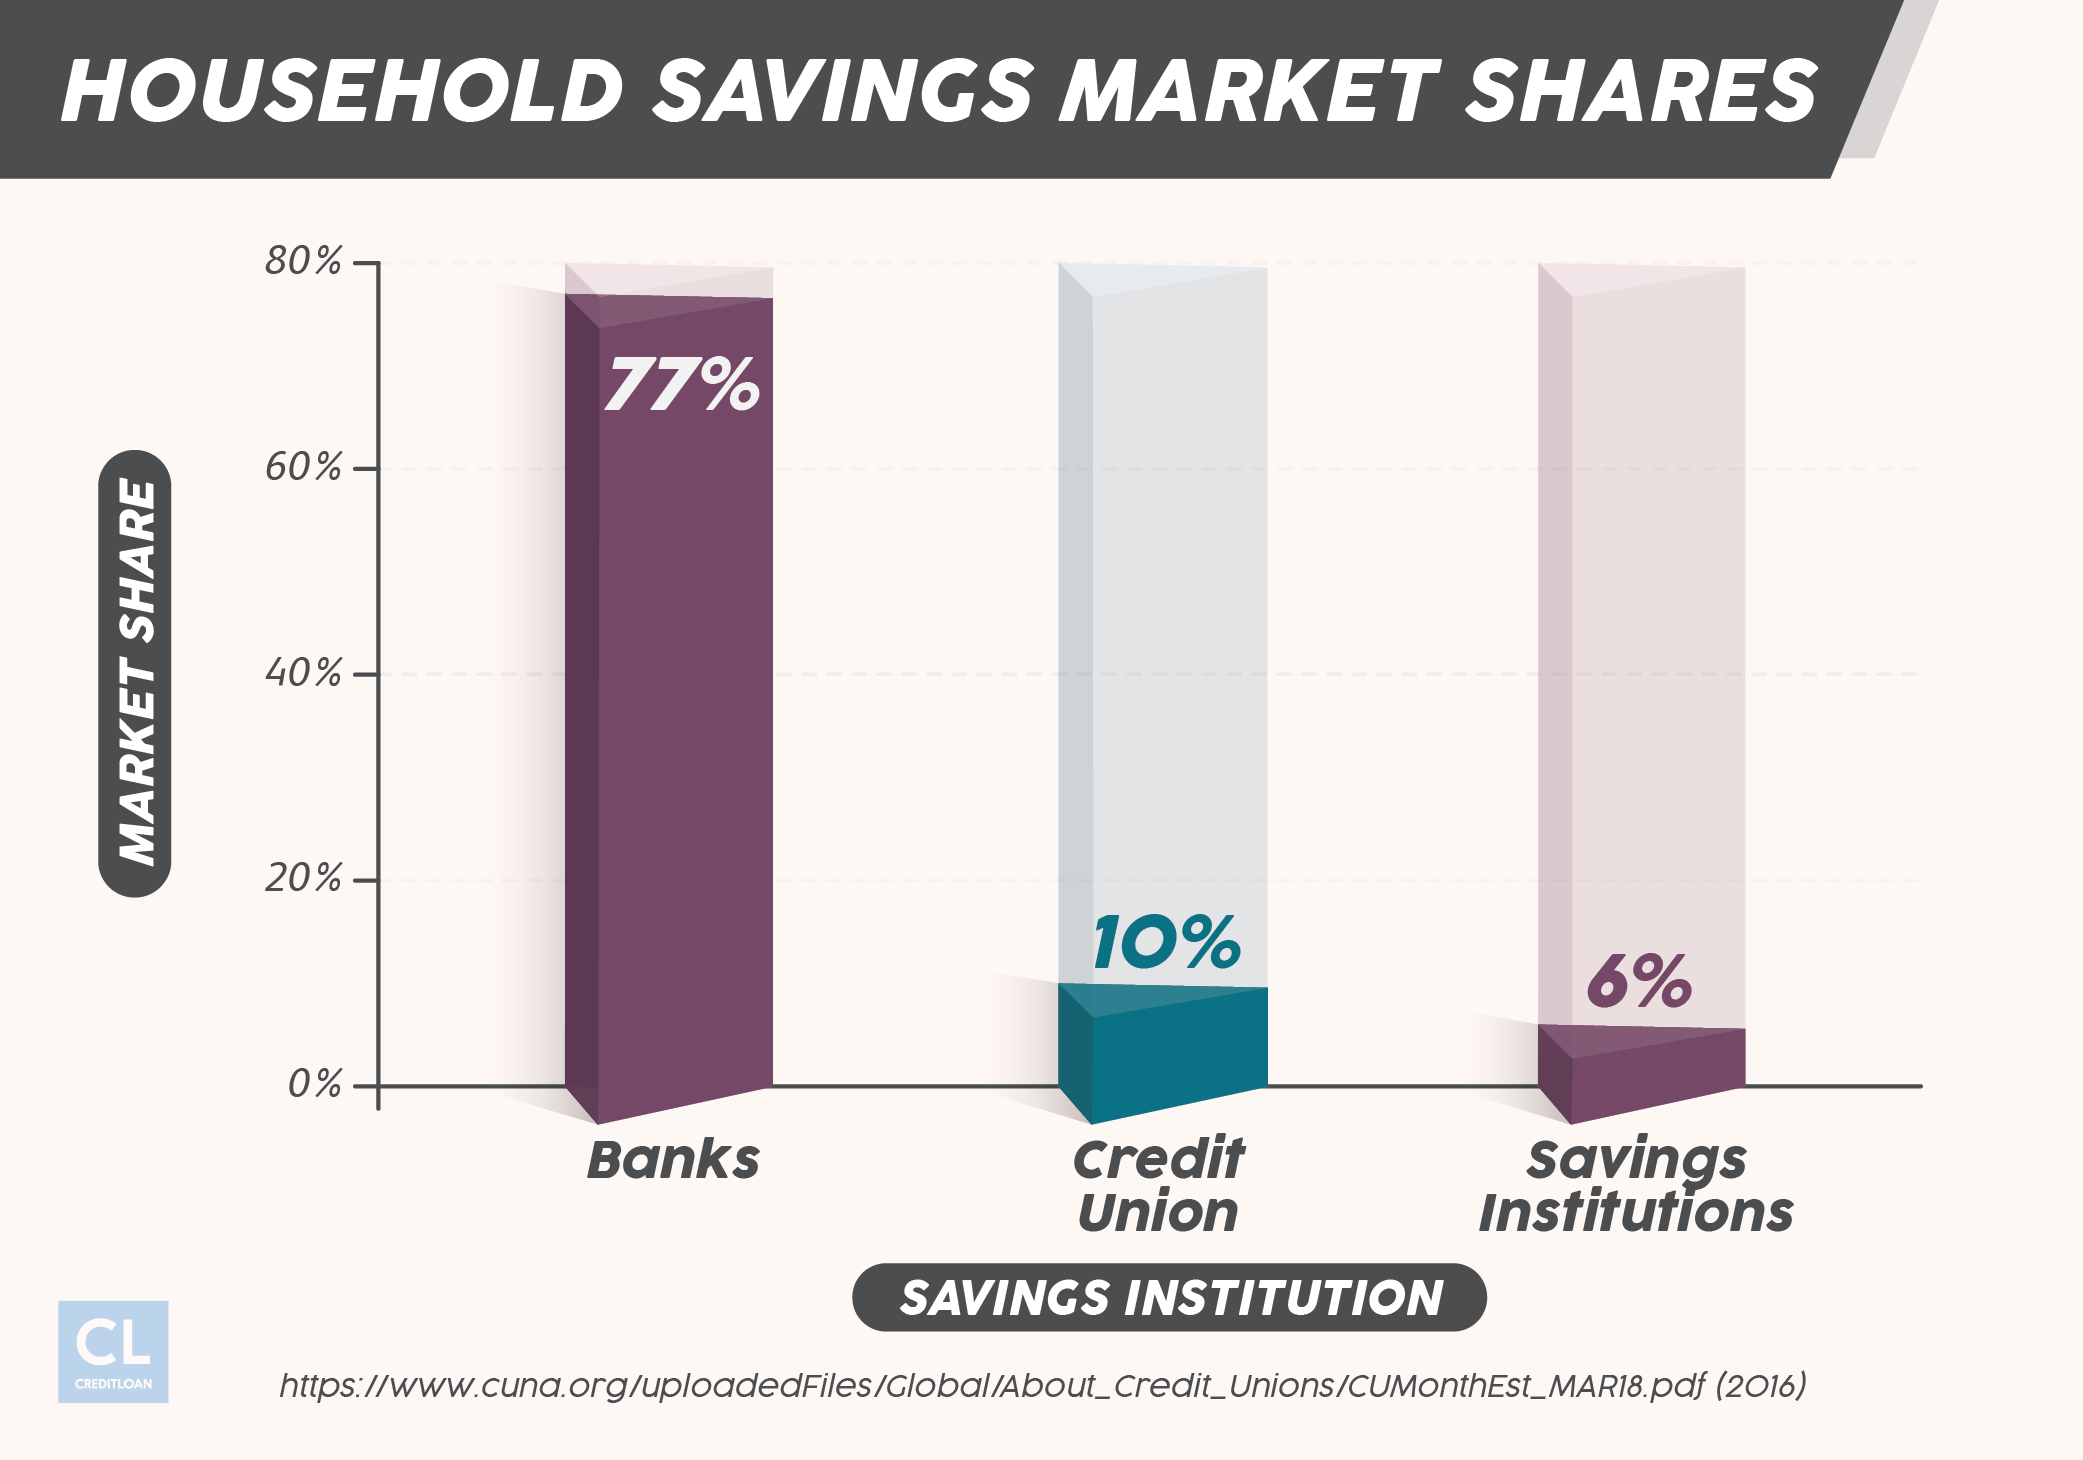 Household Savings Market Shares in Financial Institutions